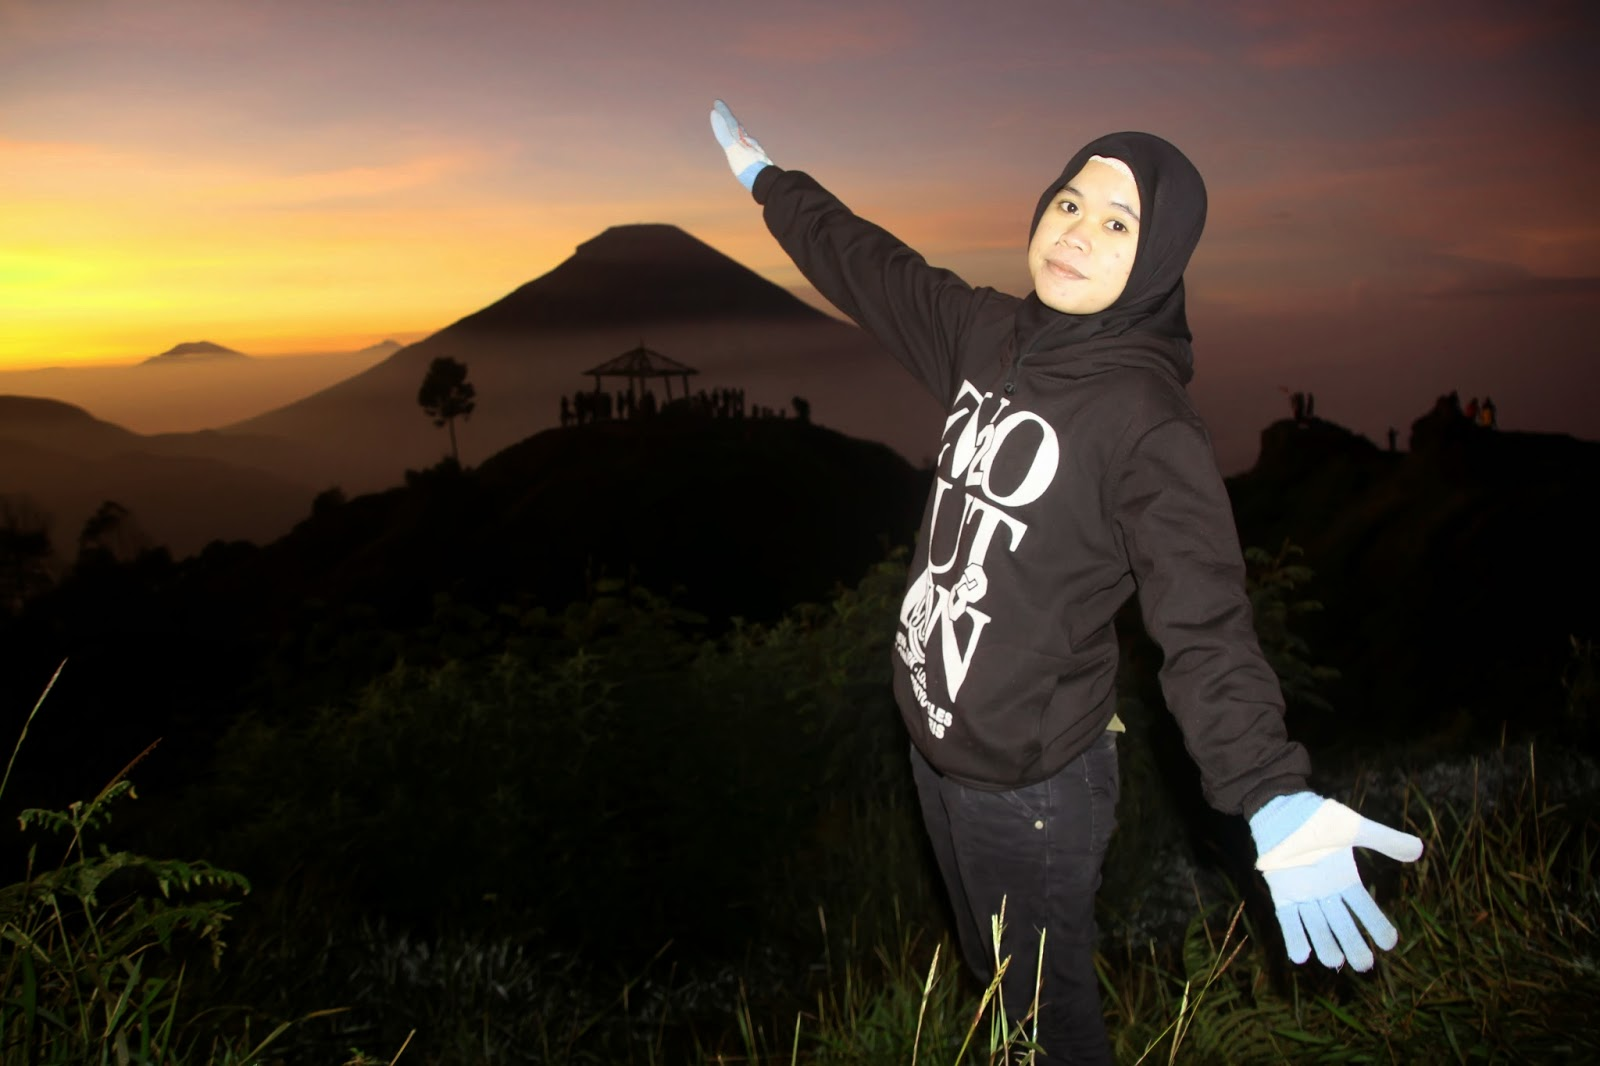 sunrise-sikunir